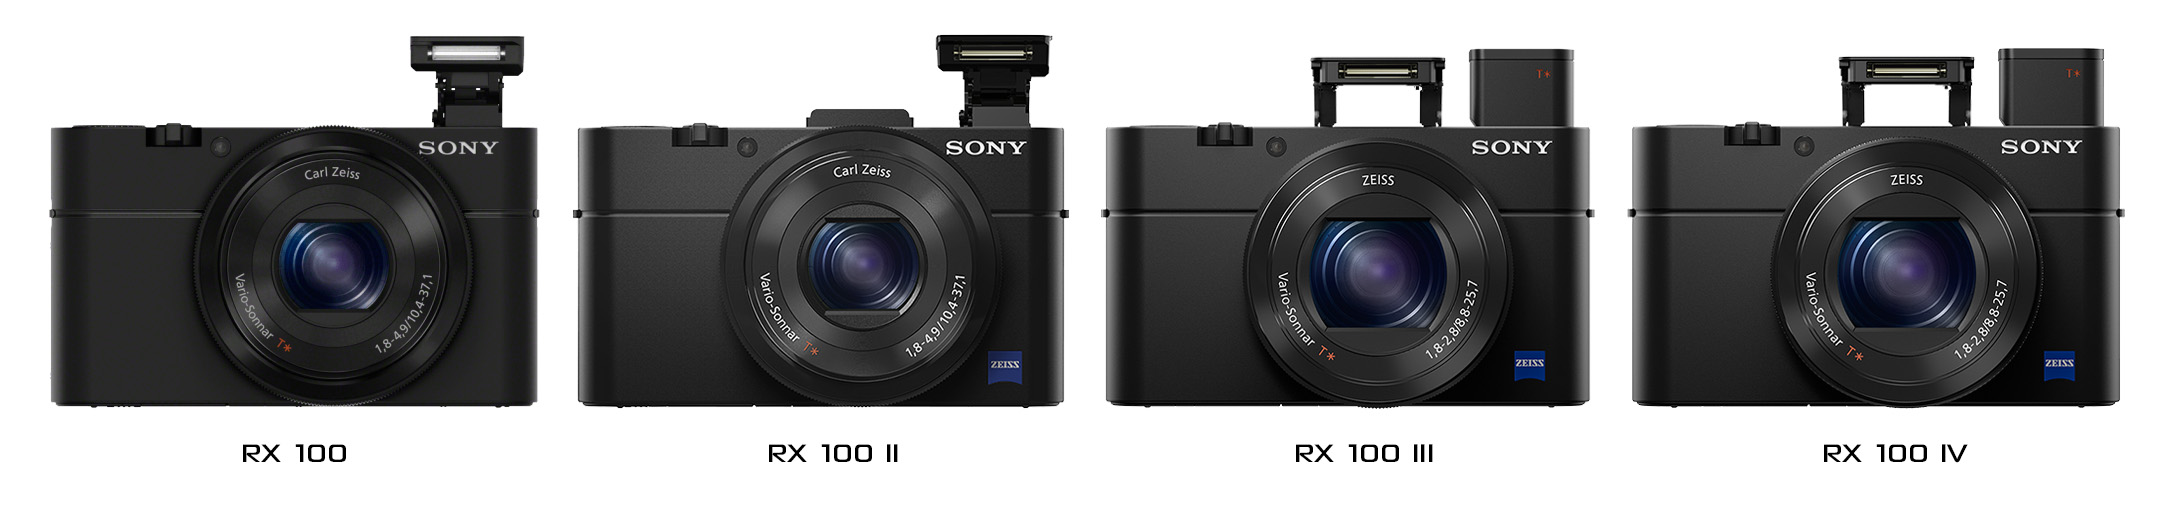 RX100 IV and all other RX100 models